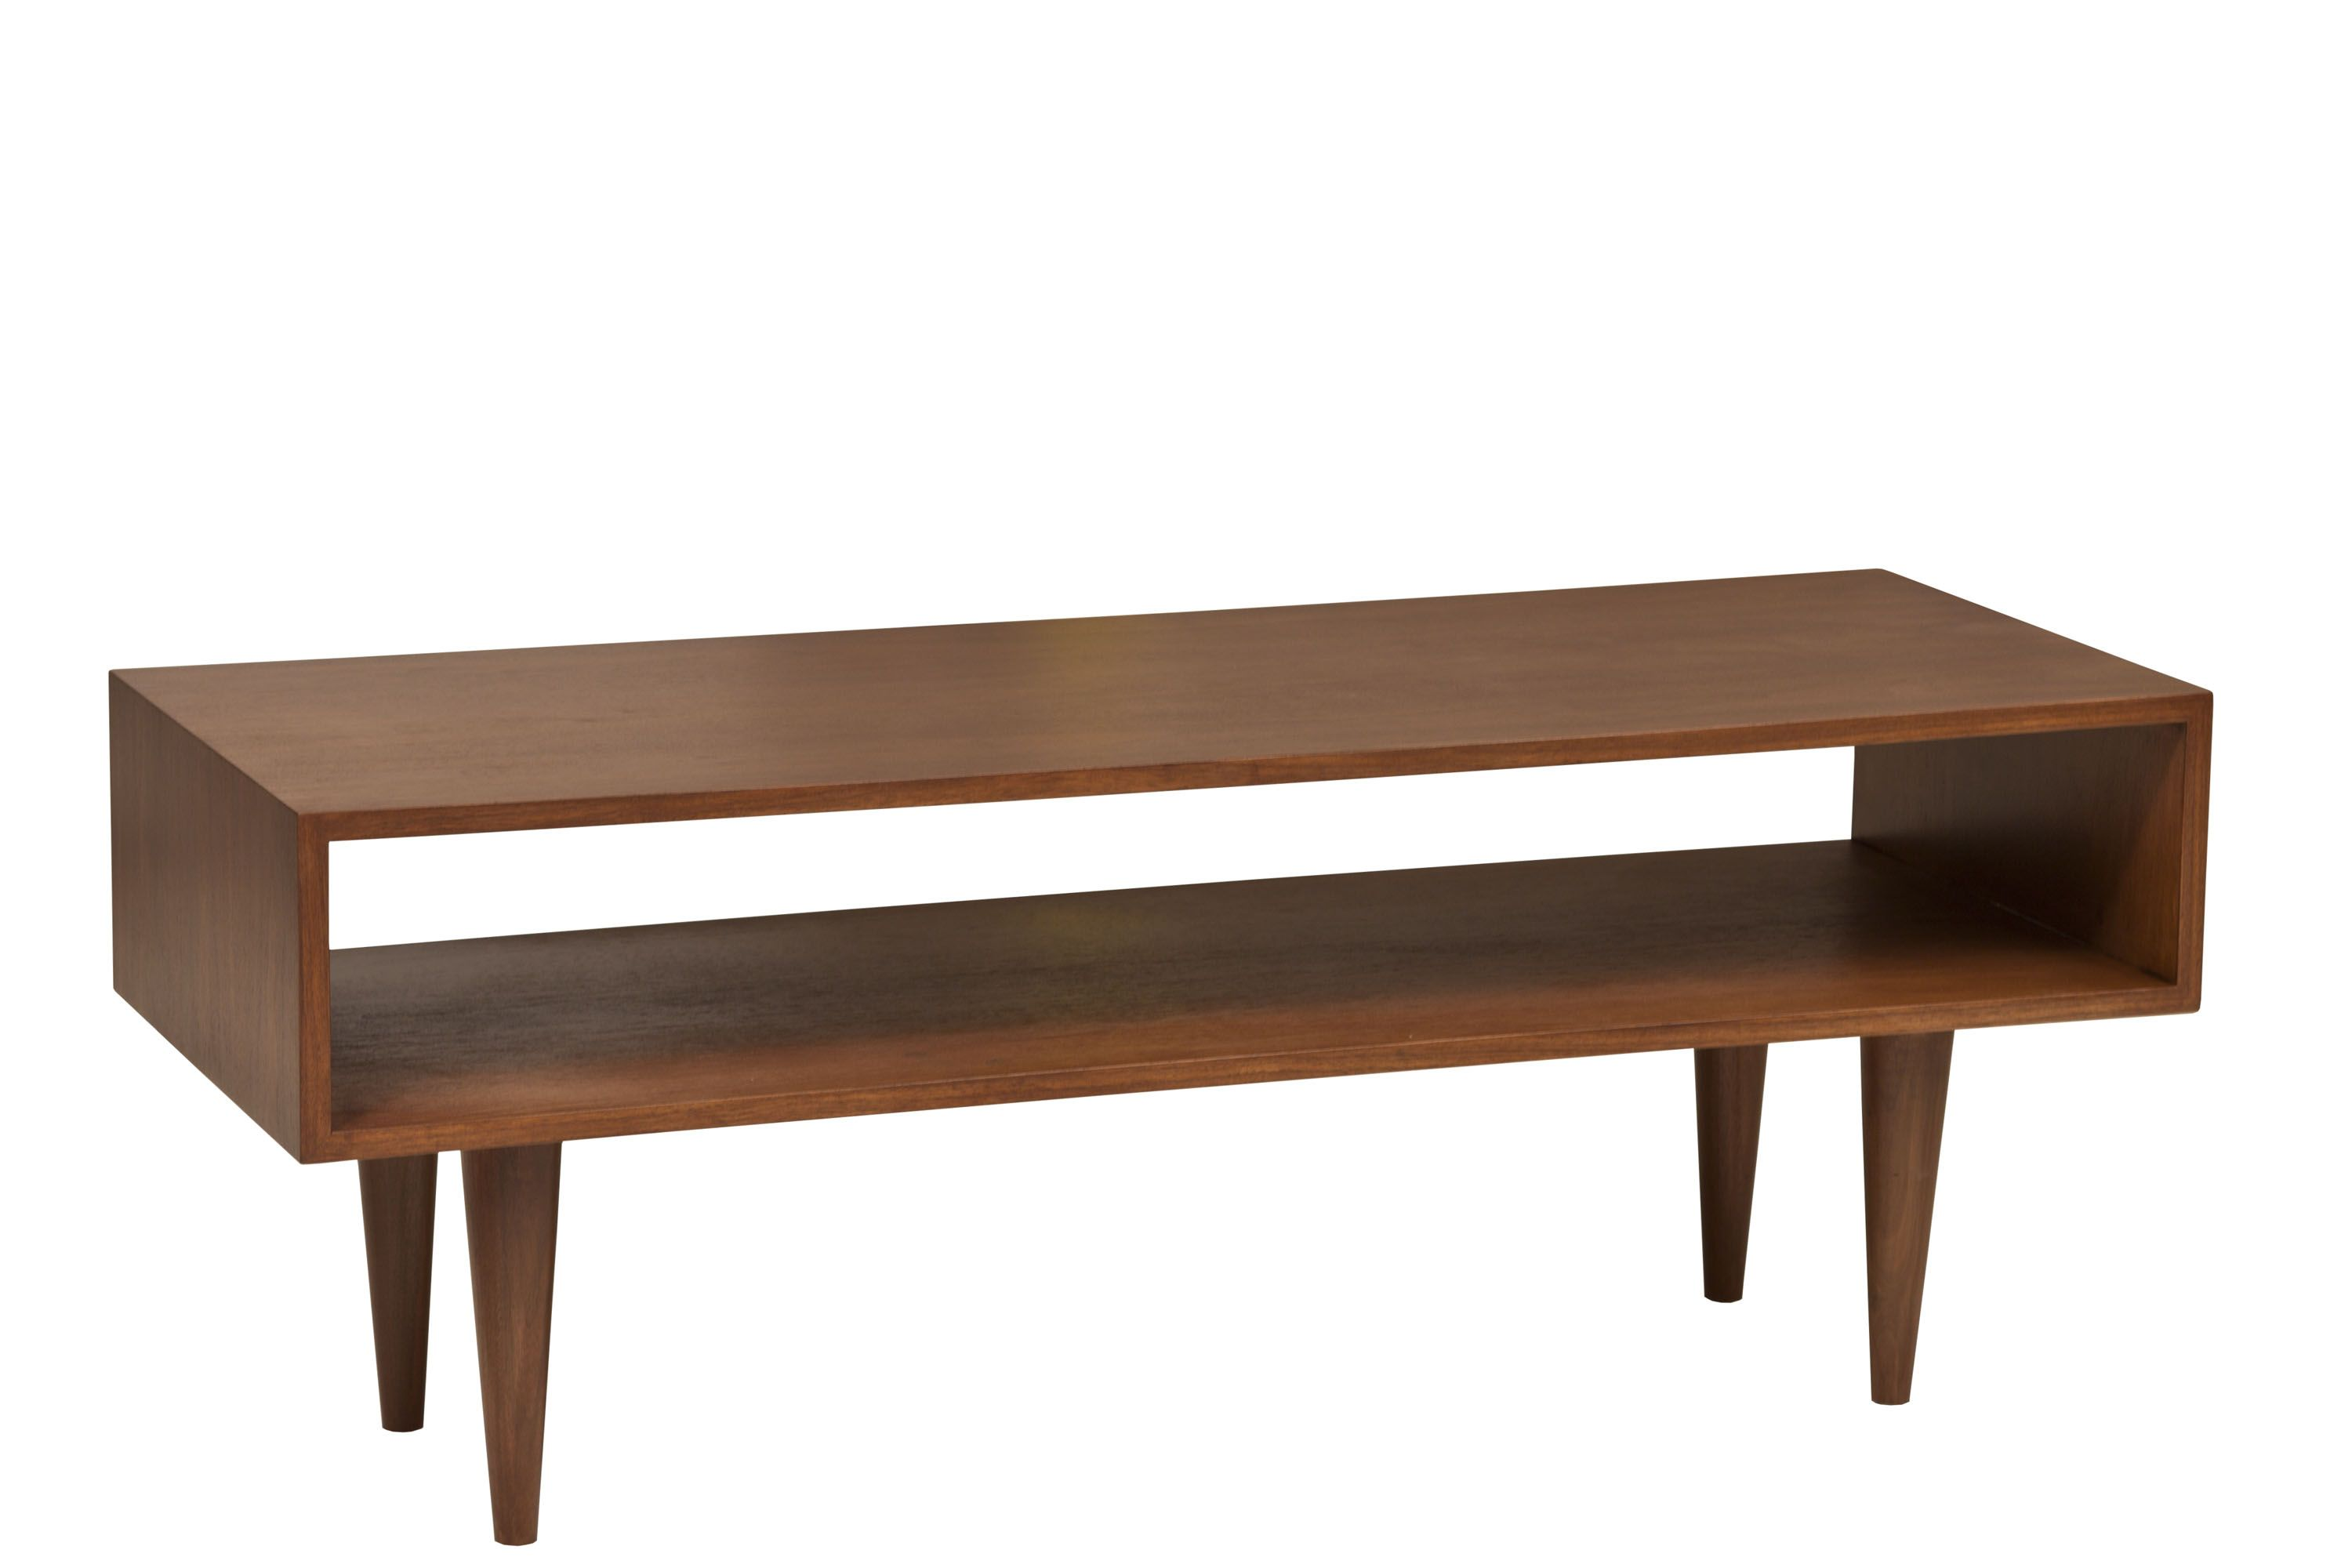 Midcentury modern coffee table coffee tables living by urbangreen furniture new york